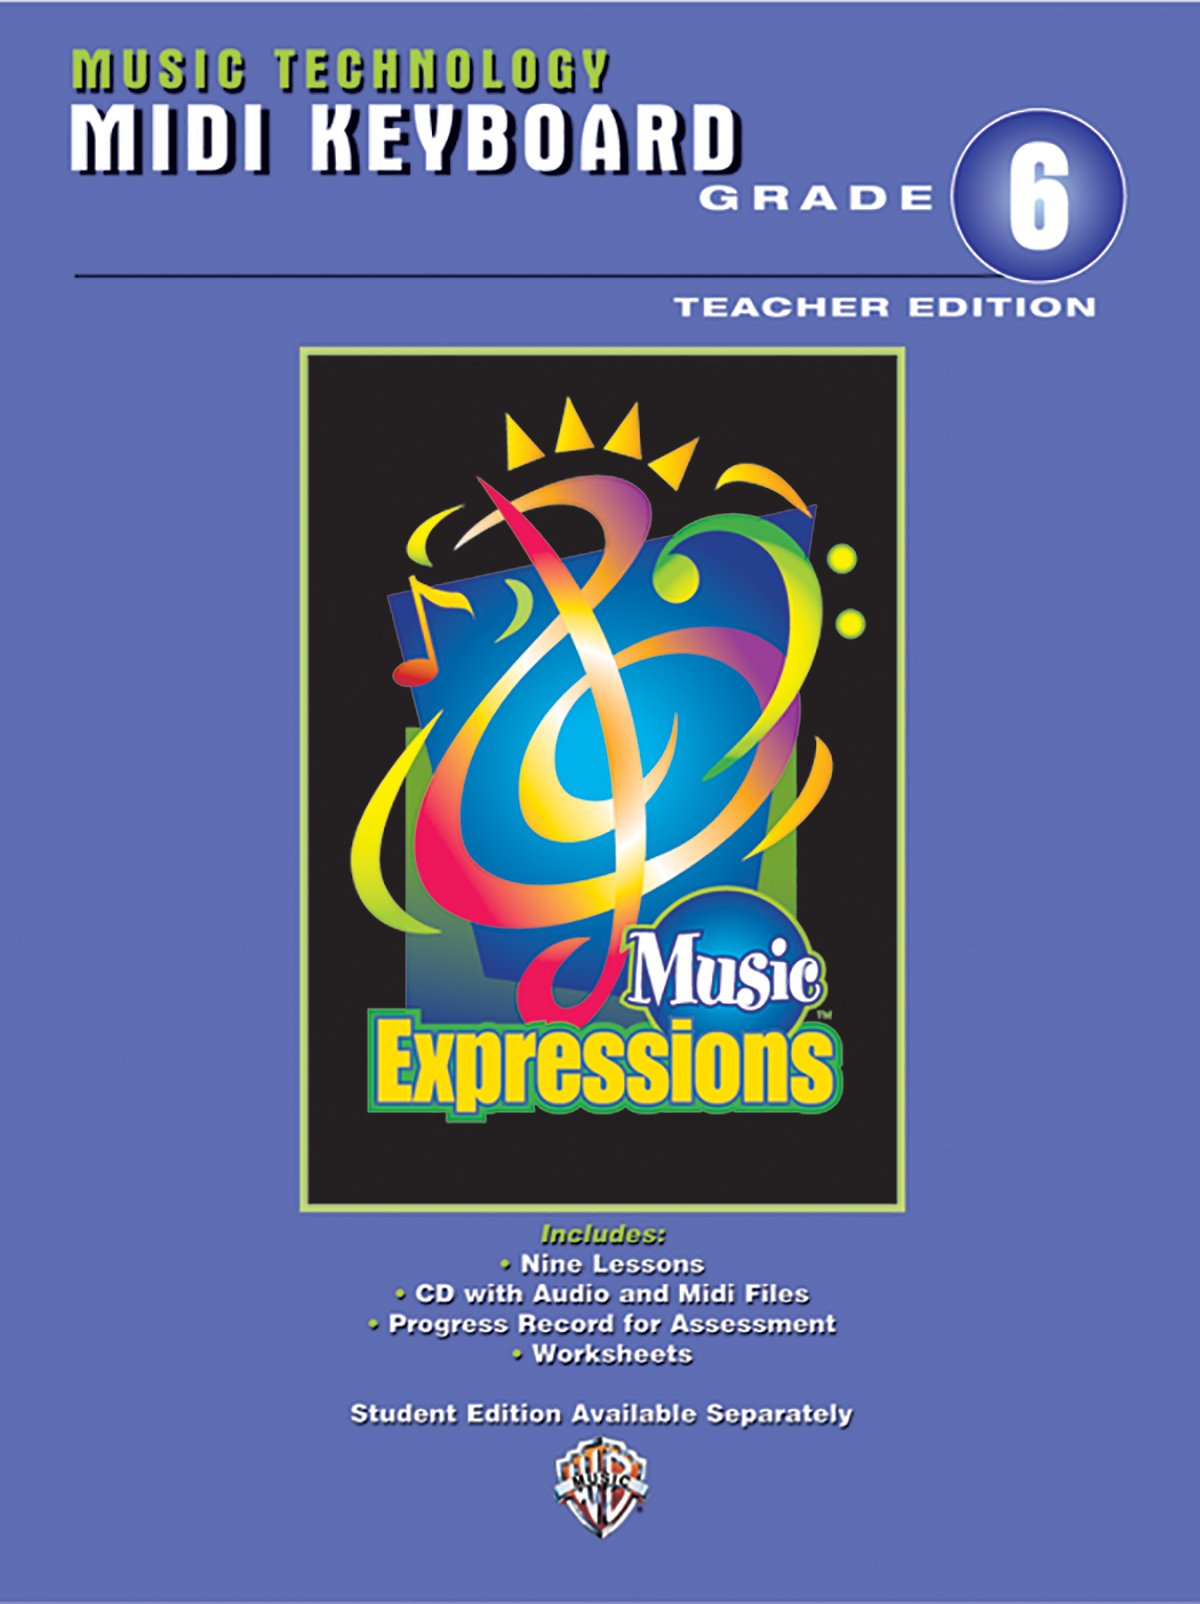 Download Music Expressions Grade 6 (Middle School 1): MIDI Keyboard Teacher Edition, Book & CD pdf